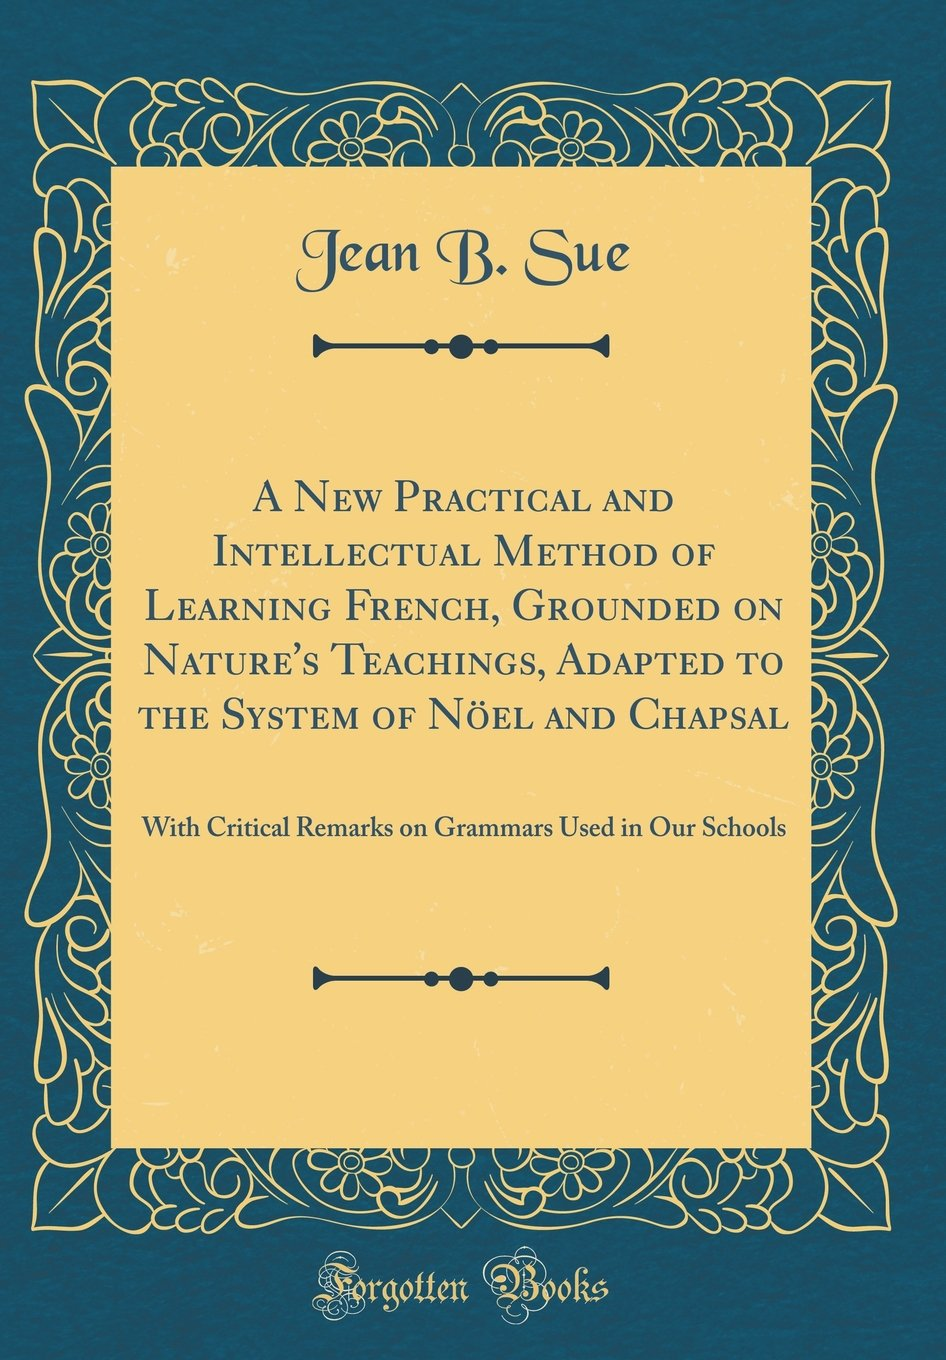 Read Online A New Practical and Intellectual Method of Learning French, Grounded on Nature's Teachings, Adapted to the System of Nöel and Chapsal: With Critical Used in Our Schools (Classic Reprint) pdf